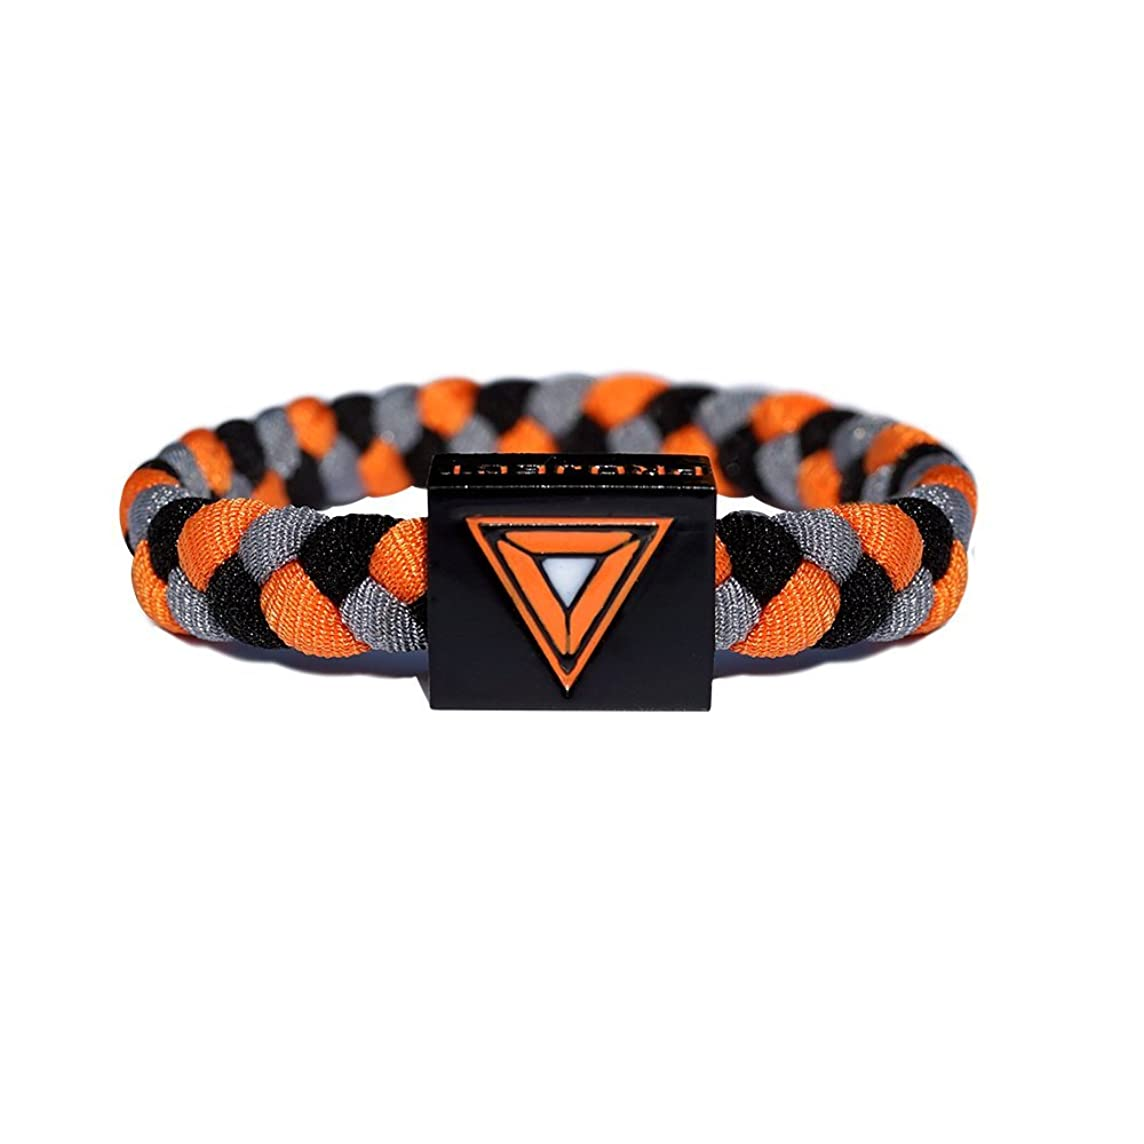 League of Legends Official Wristband, PROJECT, Black, Orange, One Size